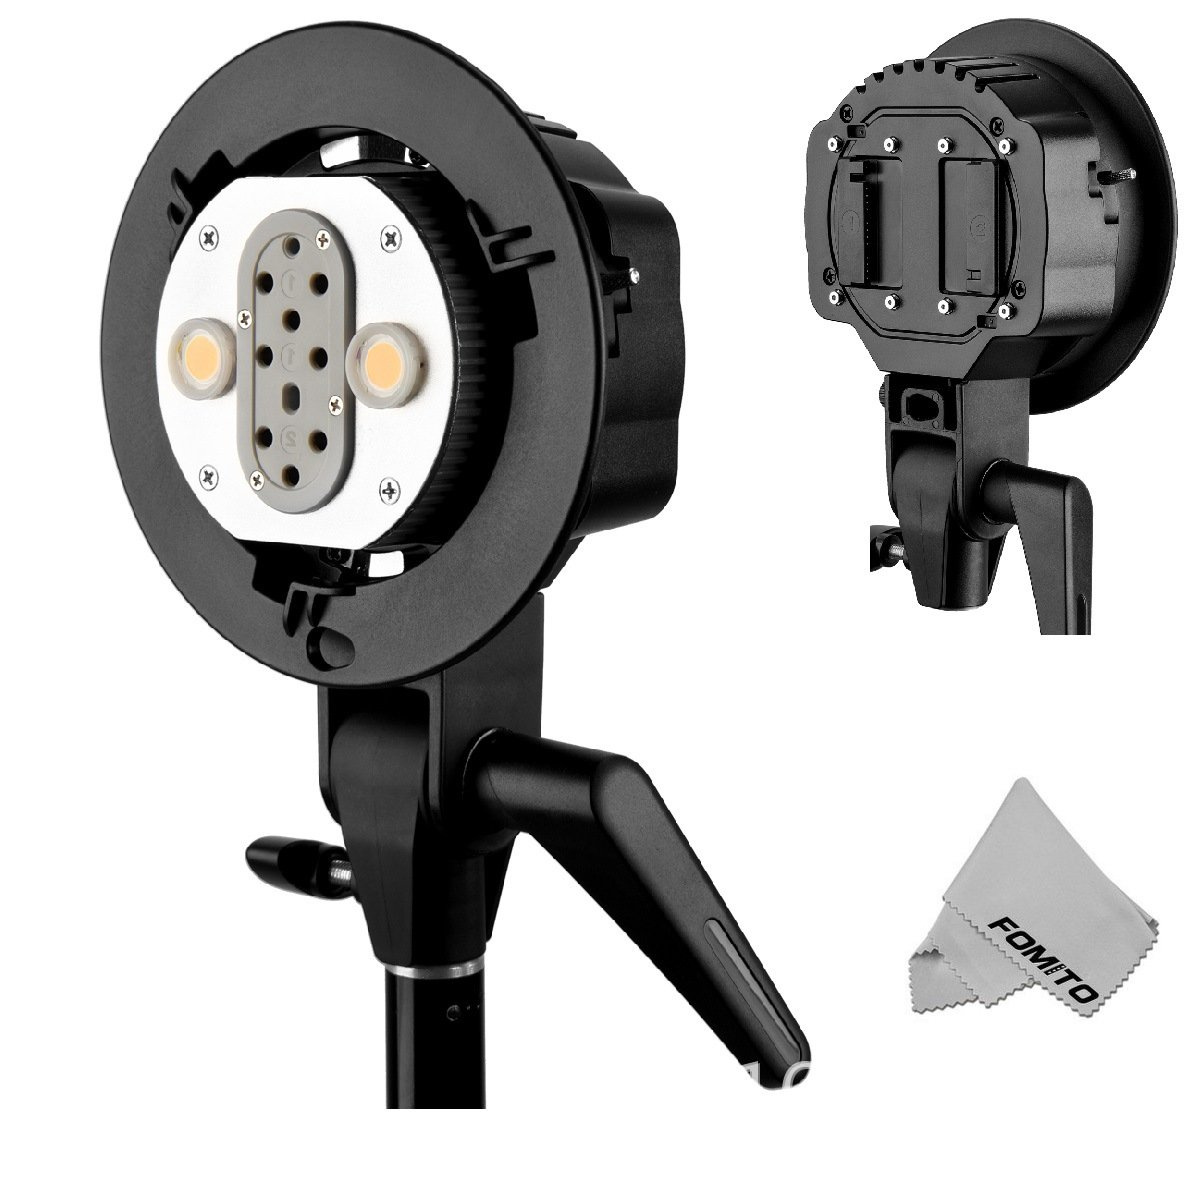 Godox Fomito AD200 Dual Power Flash Head S-type double lamp holder by Fomito